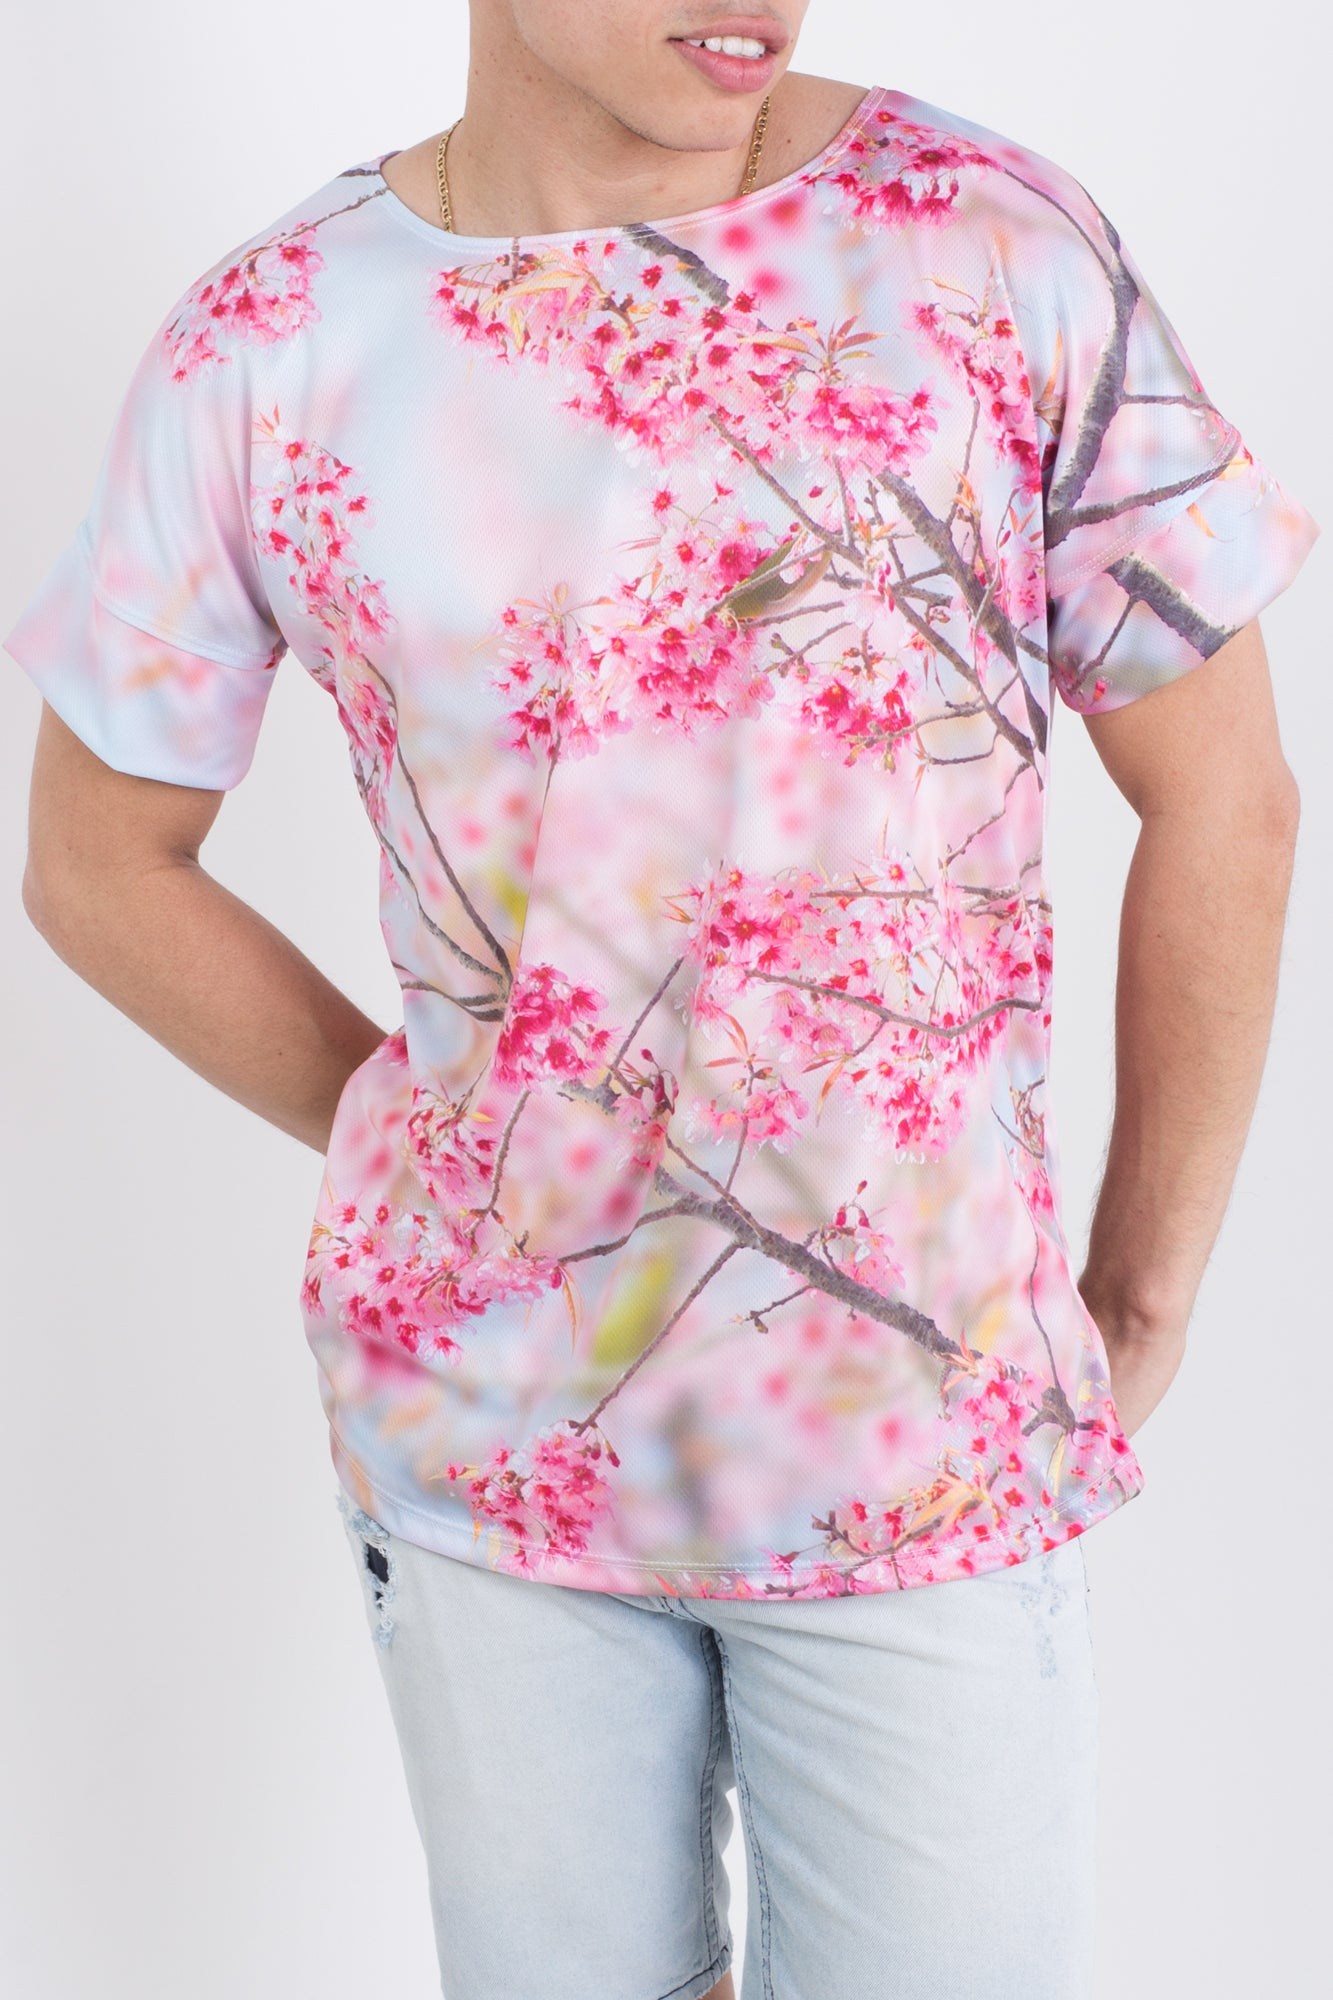 Sakura Dreams Triple Threat Tee